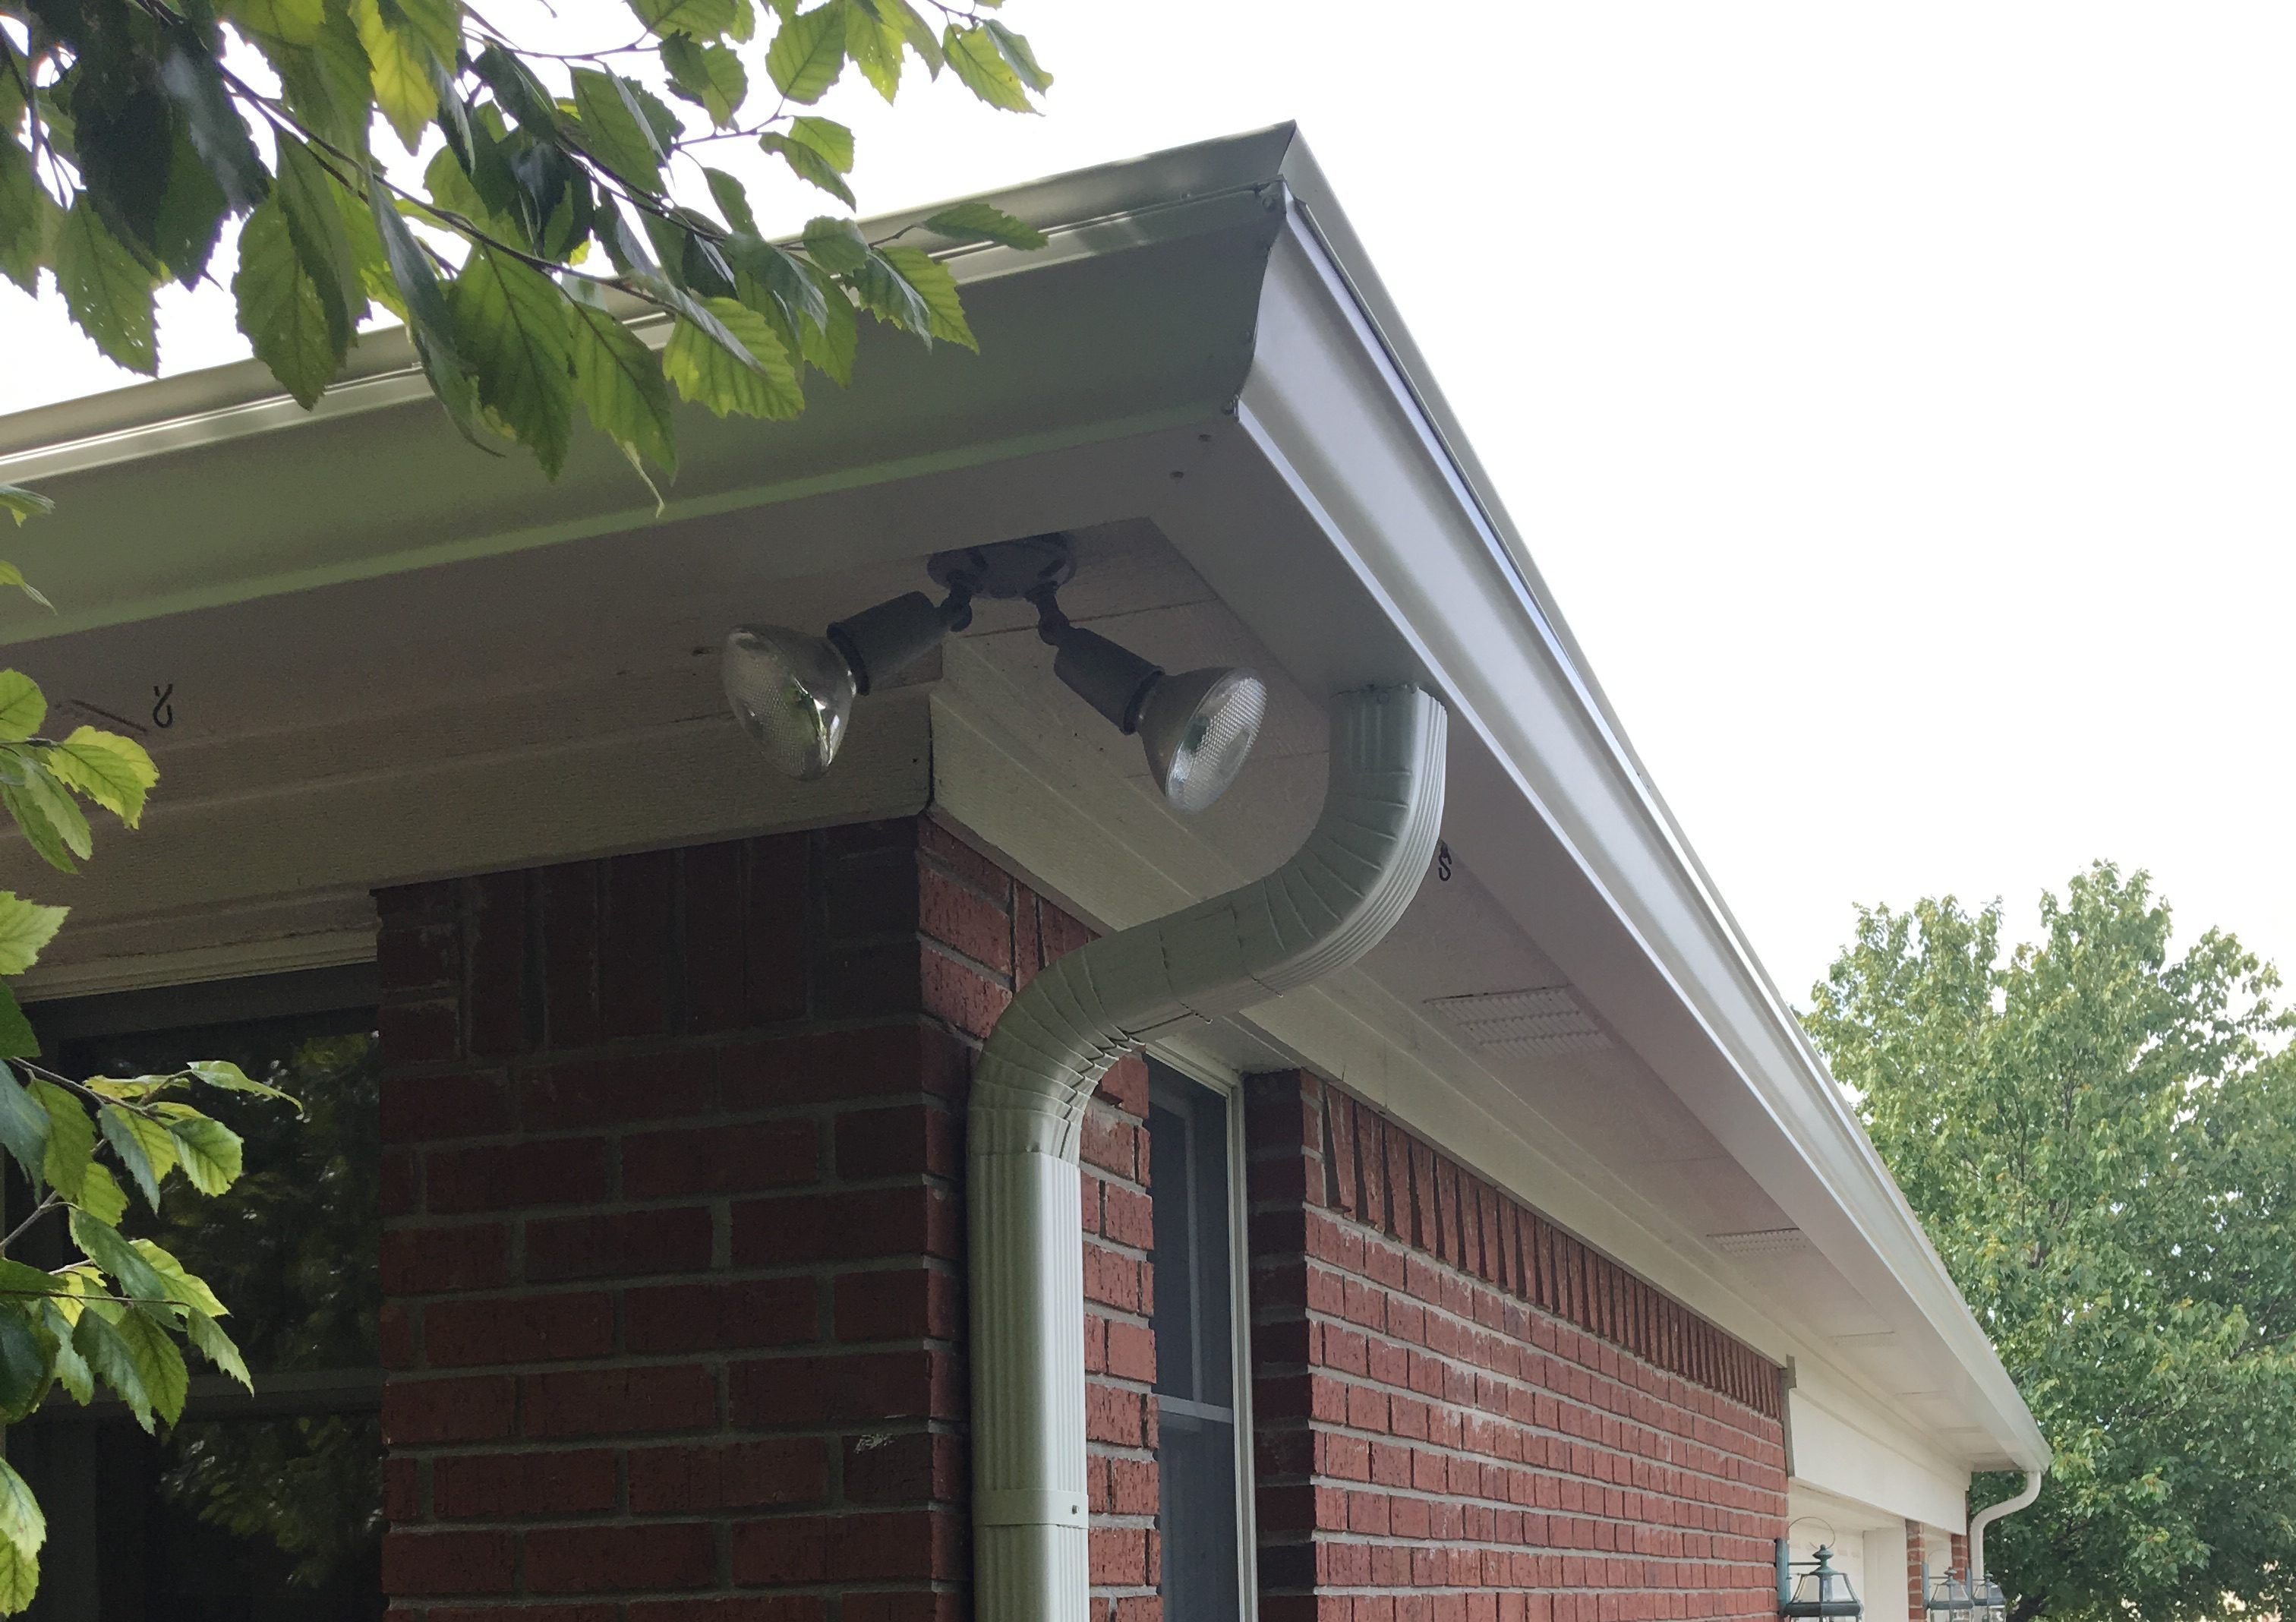 Downspout And Gutter Installation All Seasons Restoration